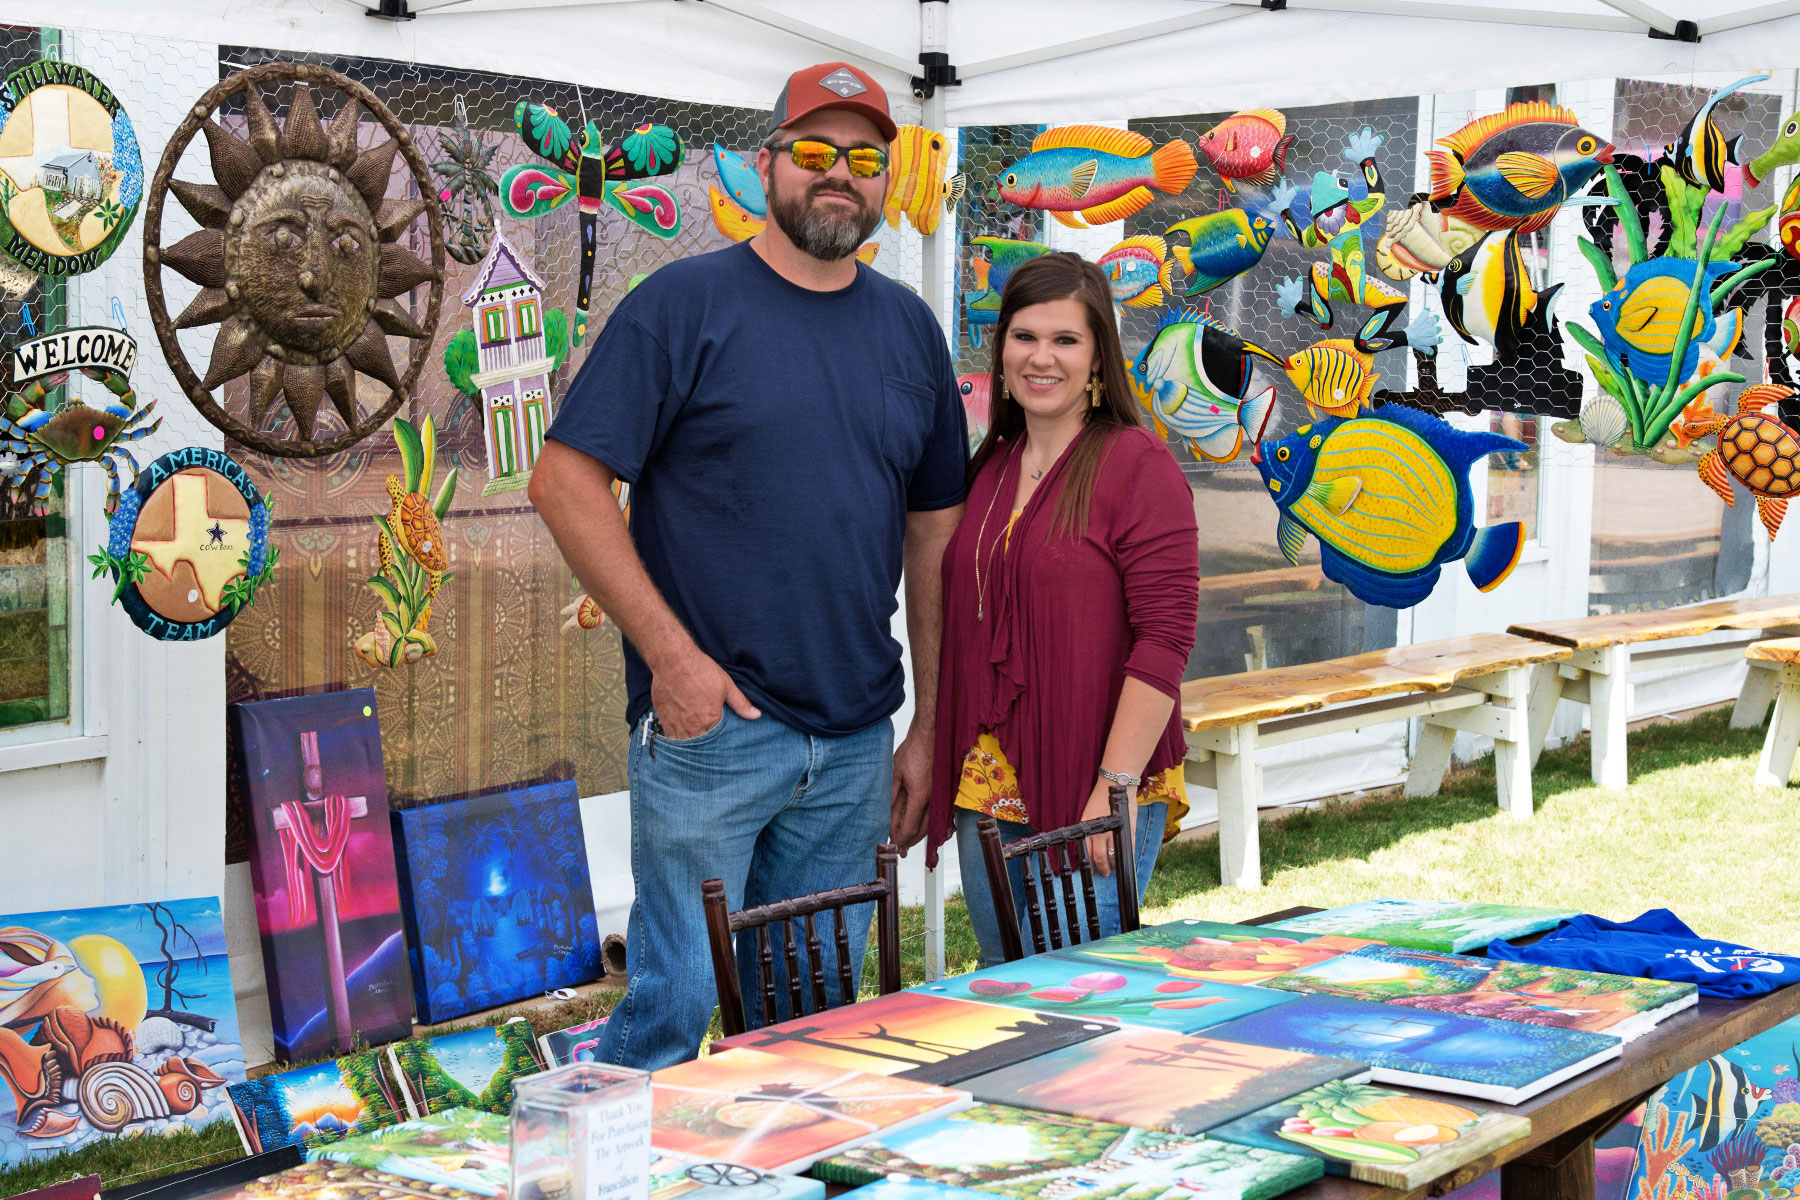 Joe and Jennifer Fails staff the Operation Go Quickly booth at the Aledo Art & Wine Festival